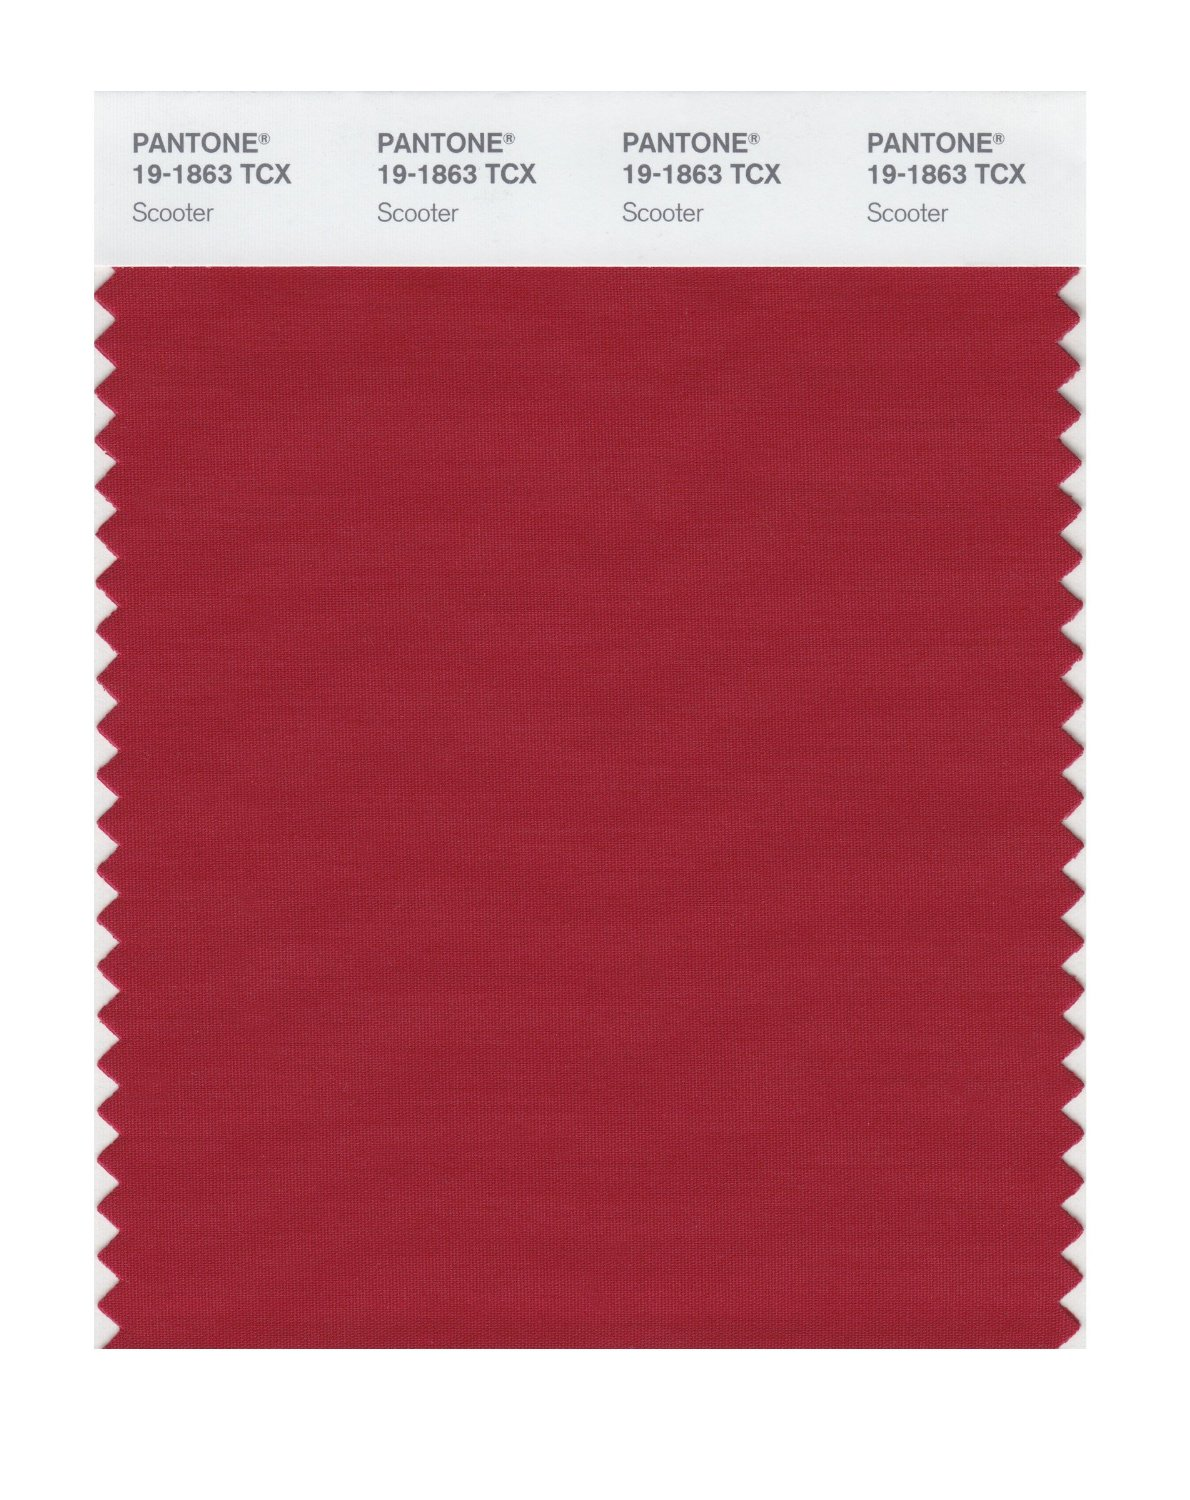 Pantone Smart Swatch 19-1863 Scooter